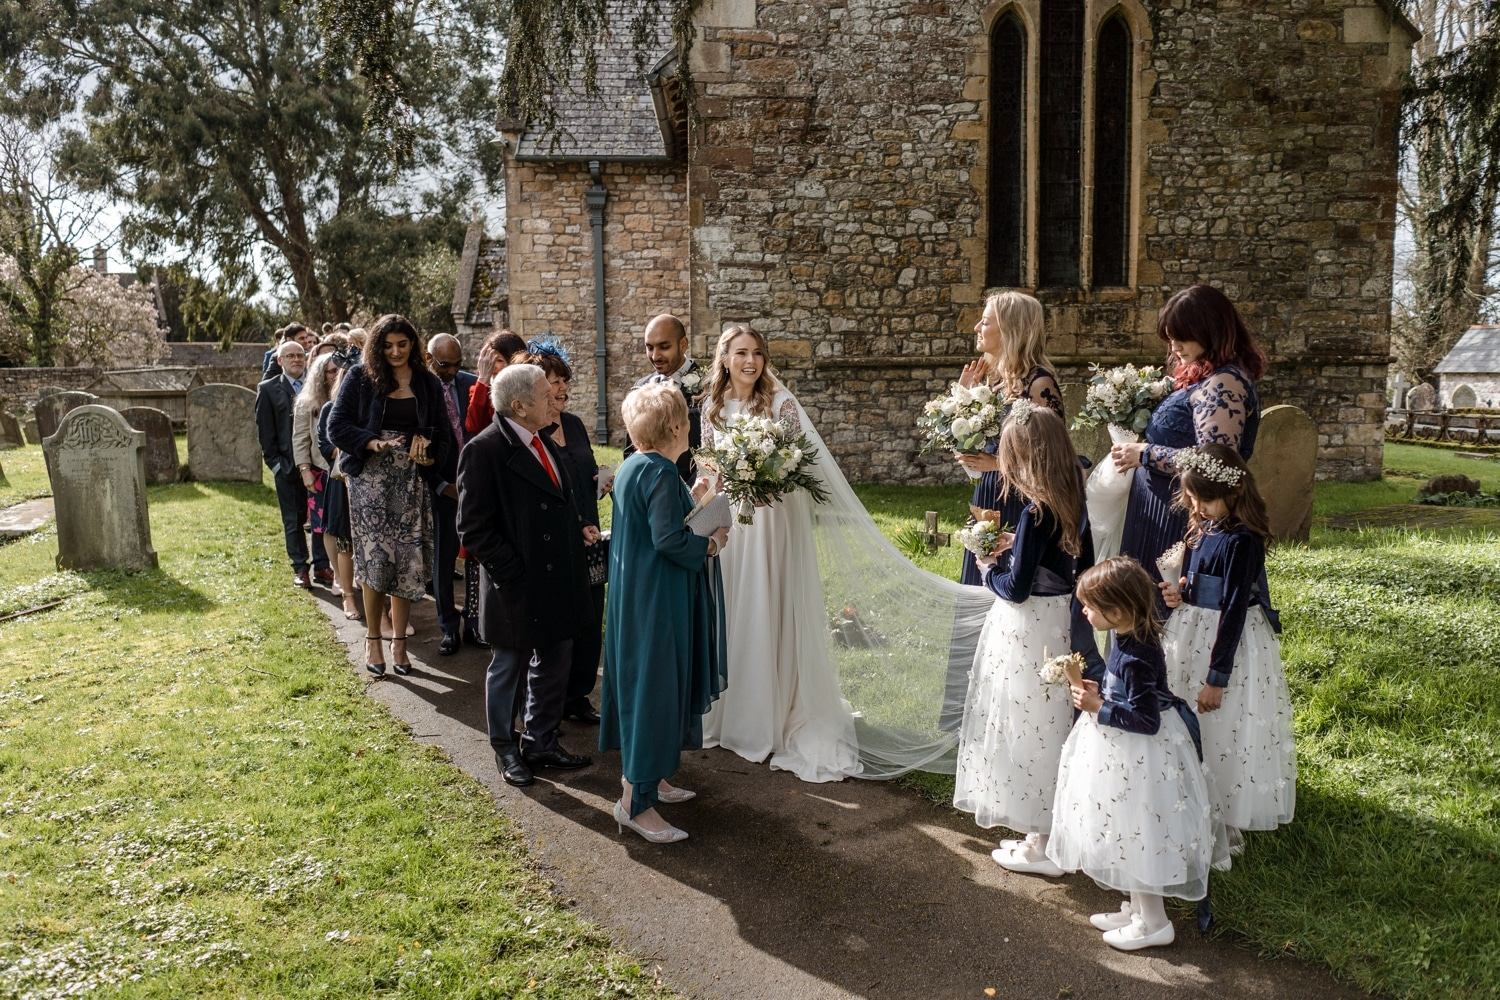 St Tewdrics Church wedding in South Wales